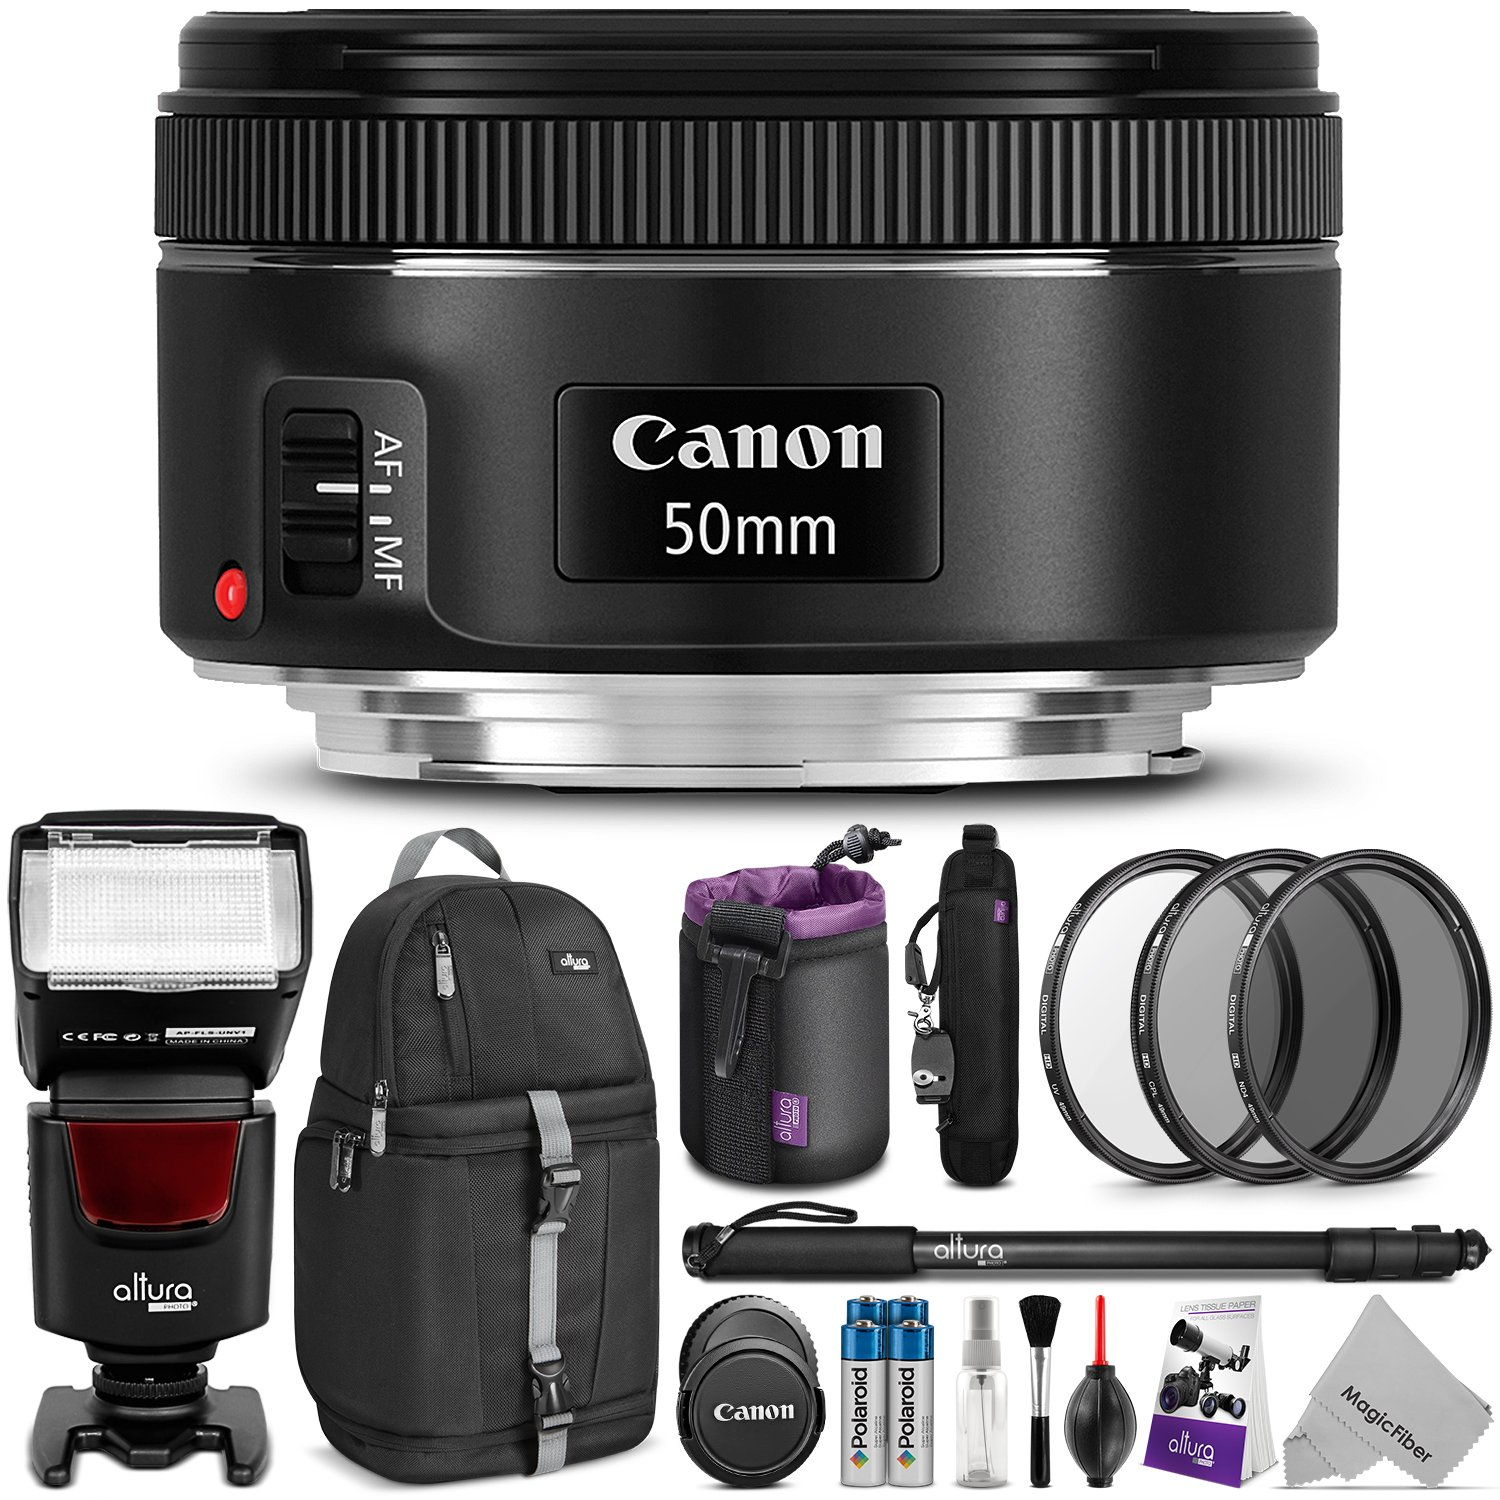 Canon EF 50mm f/1.8 STM Lens w/ Complete Photo and Travel Bundle – Includes: Altura Photo Flash, Sling Backpack, Monopod, UV-CPL-ND4, Rapid Fire Neck Strap, Lens Pouch, Cleaning Set